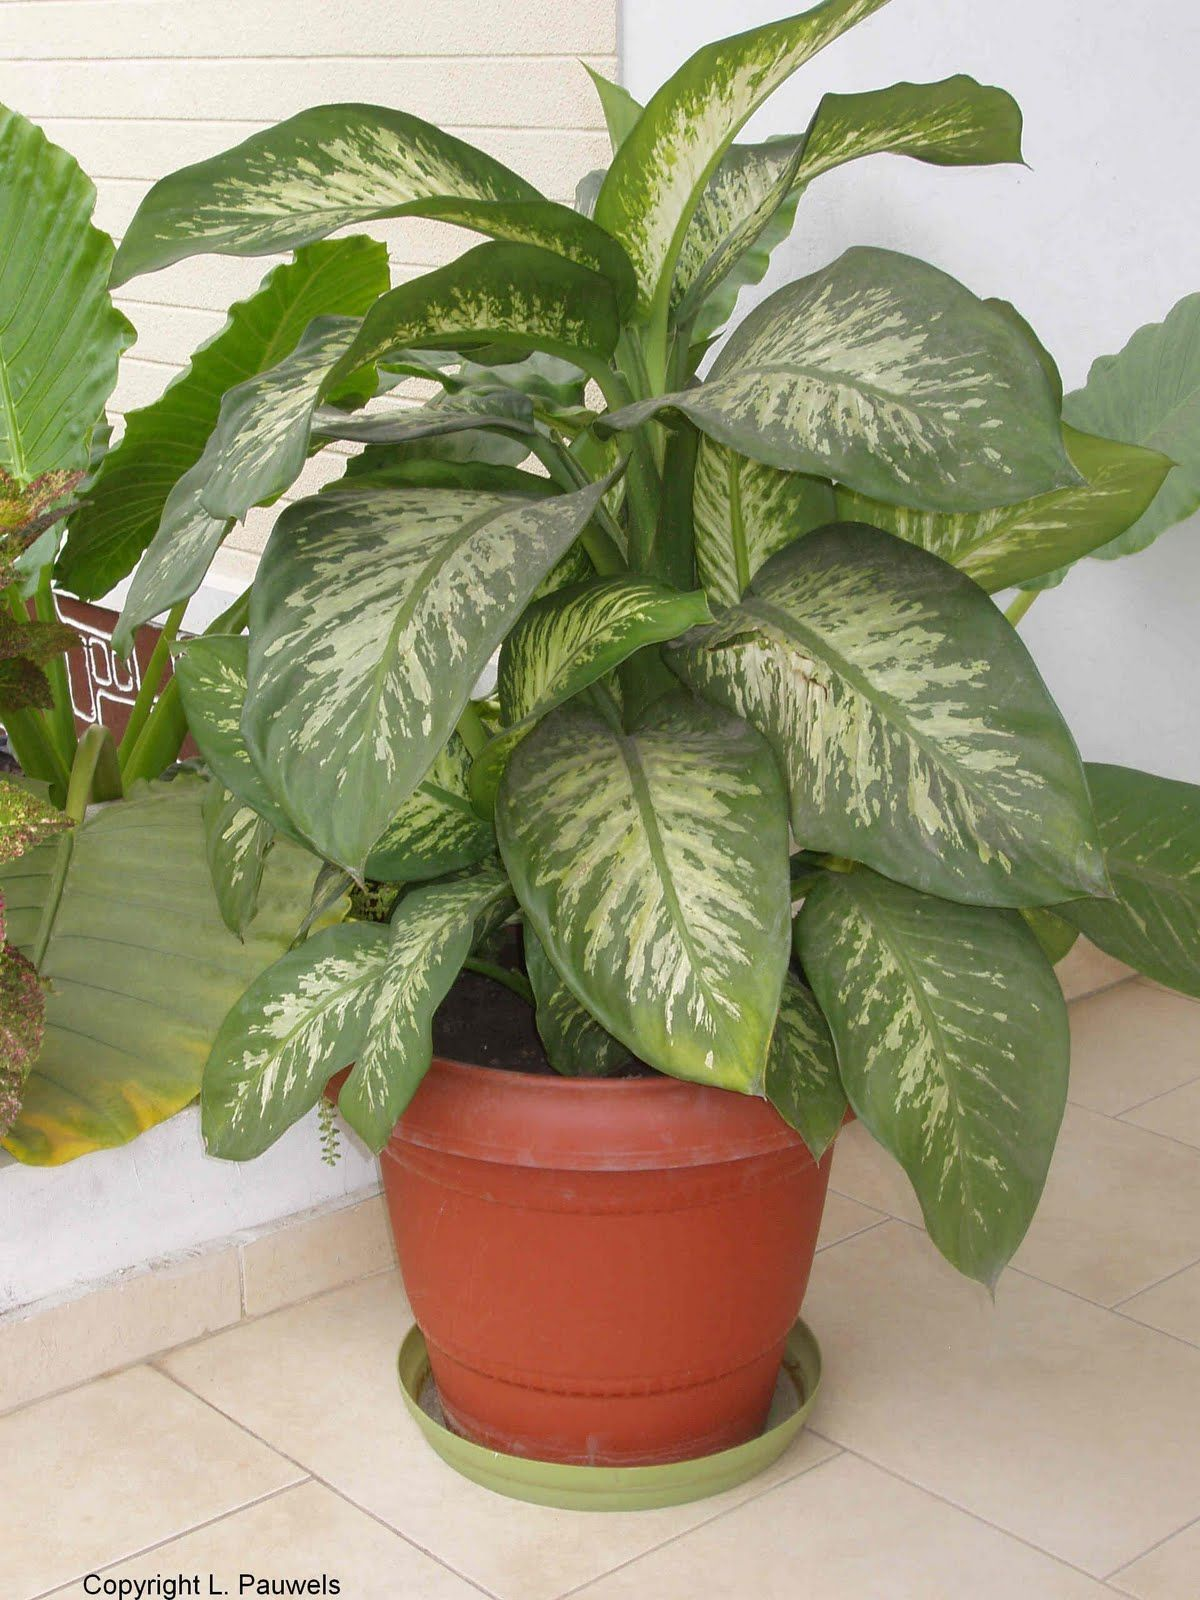 house plants pictures and names | House Plants,Plants House ... on household tropical plants, tall modern house plants, tall bamboo house plants, tall tropical trees, indoor plants, large leaf plants, tall orchids, long tropical leaf plants, tall flowers, tall cactus house plants, tall plant table, tall red house plants, tall container gardening, types of house plants, tall tree house plants, tall house plants low light, tall common house plants, tall tropical pots,